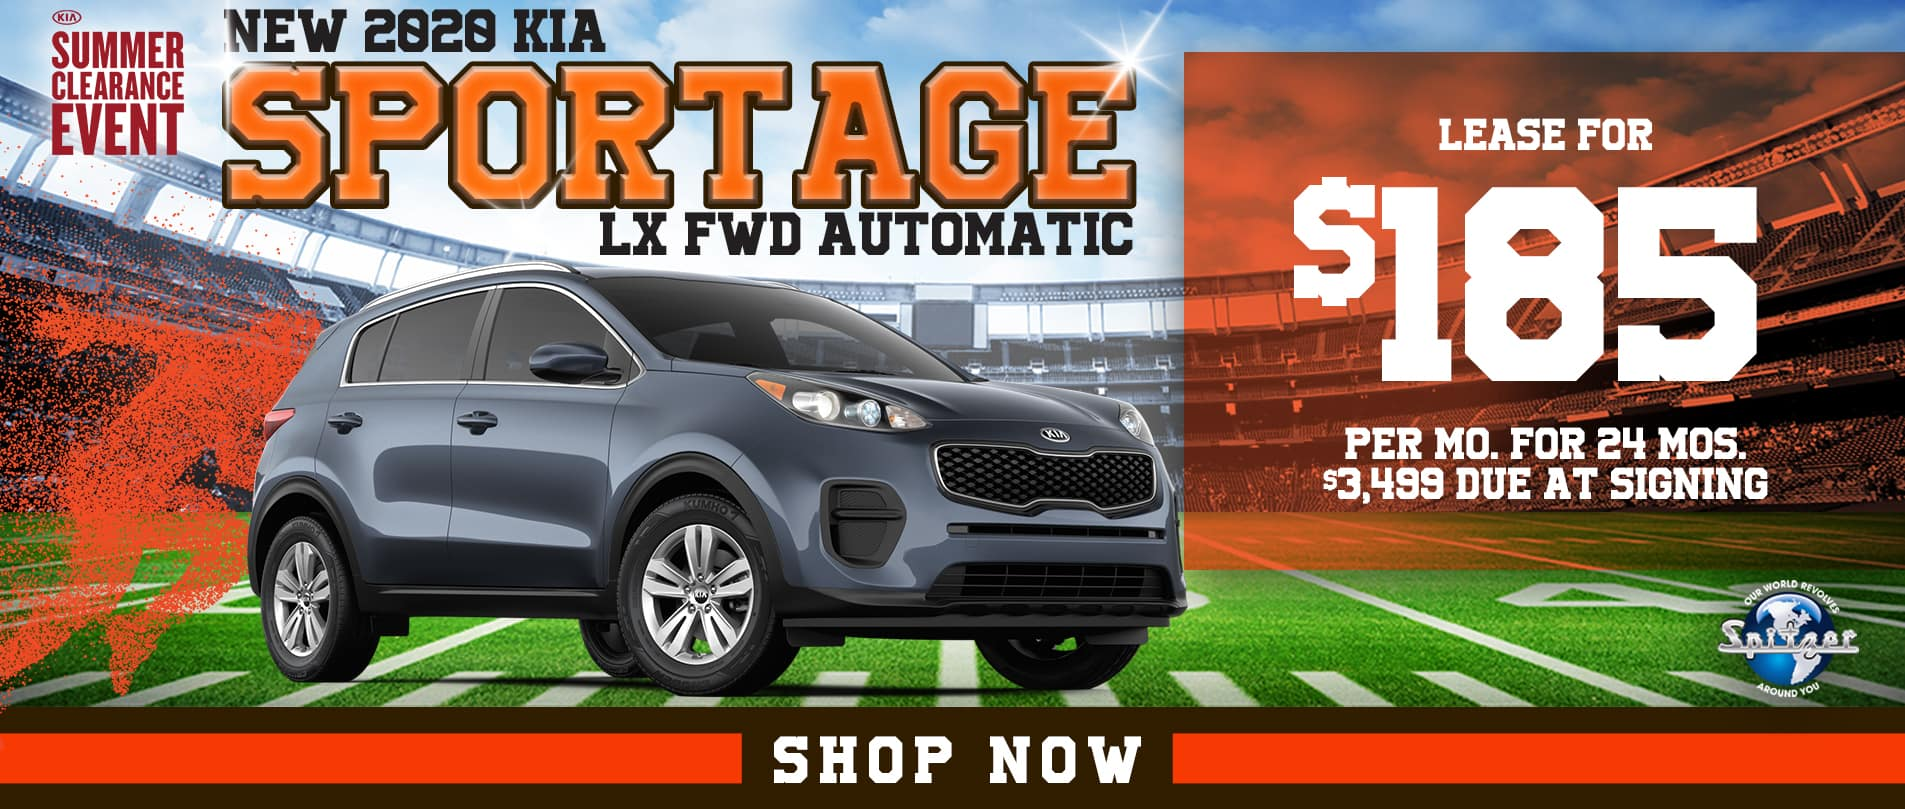 Sportage | Lease for $185 per month